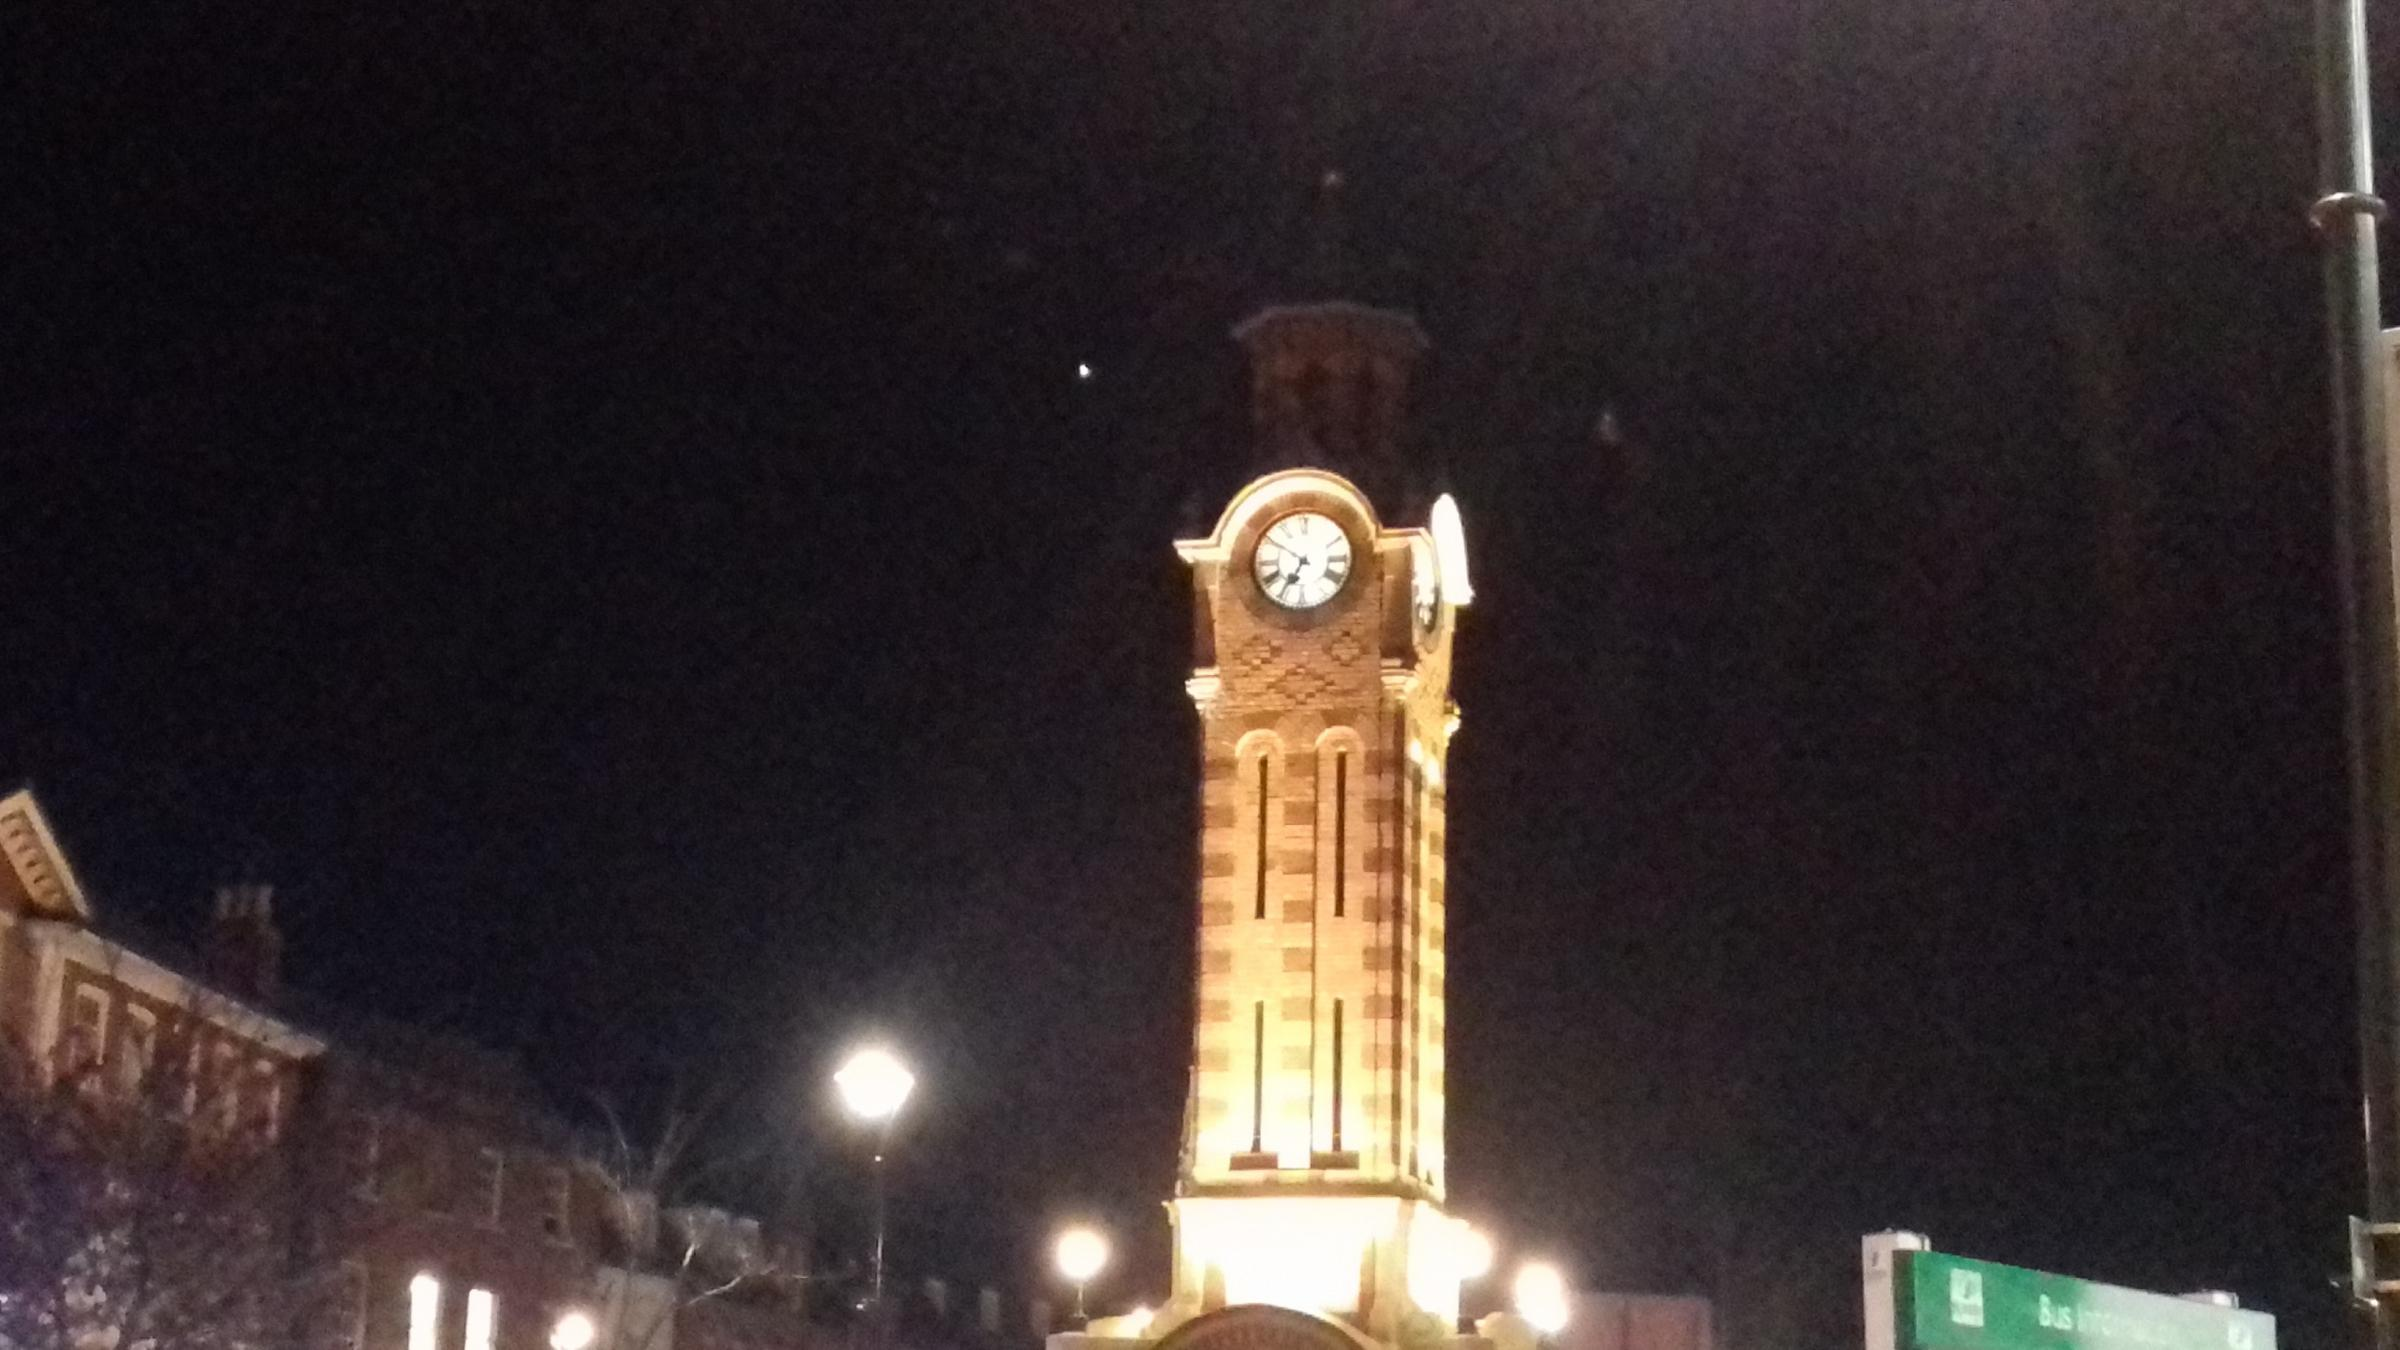 The clock tower in Epsom High Street. Pic credit: Craig Minter